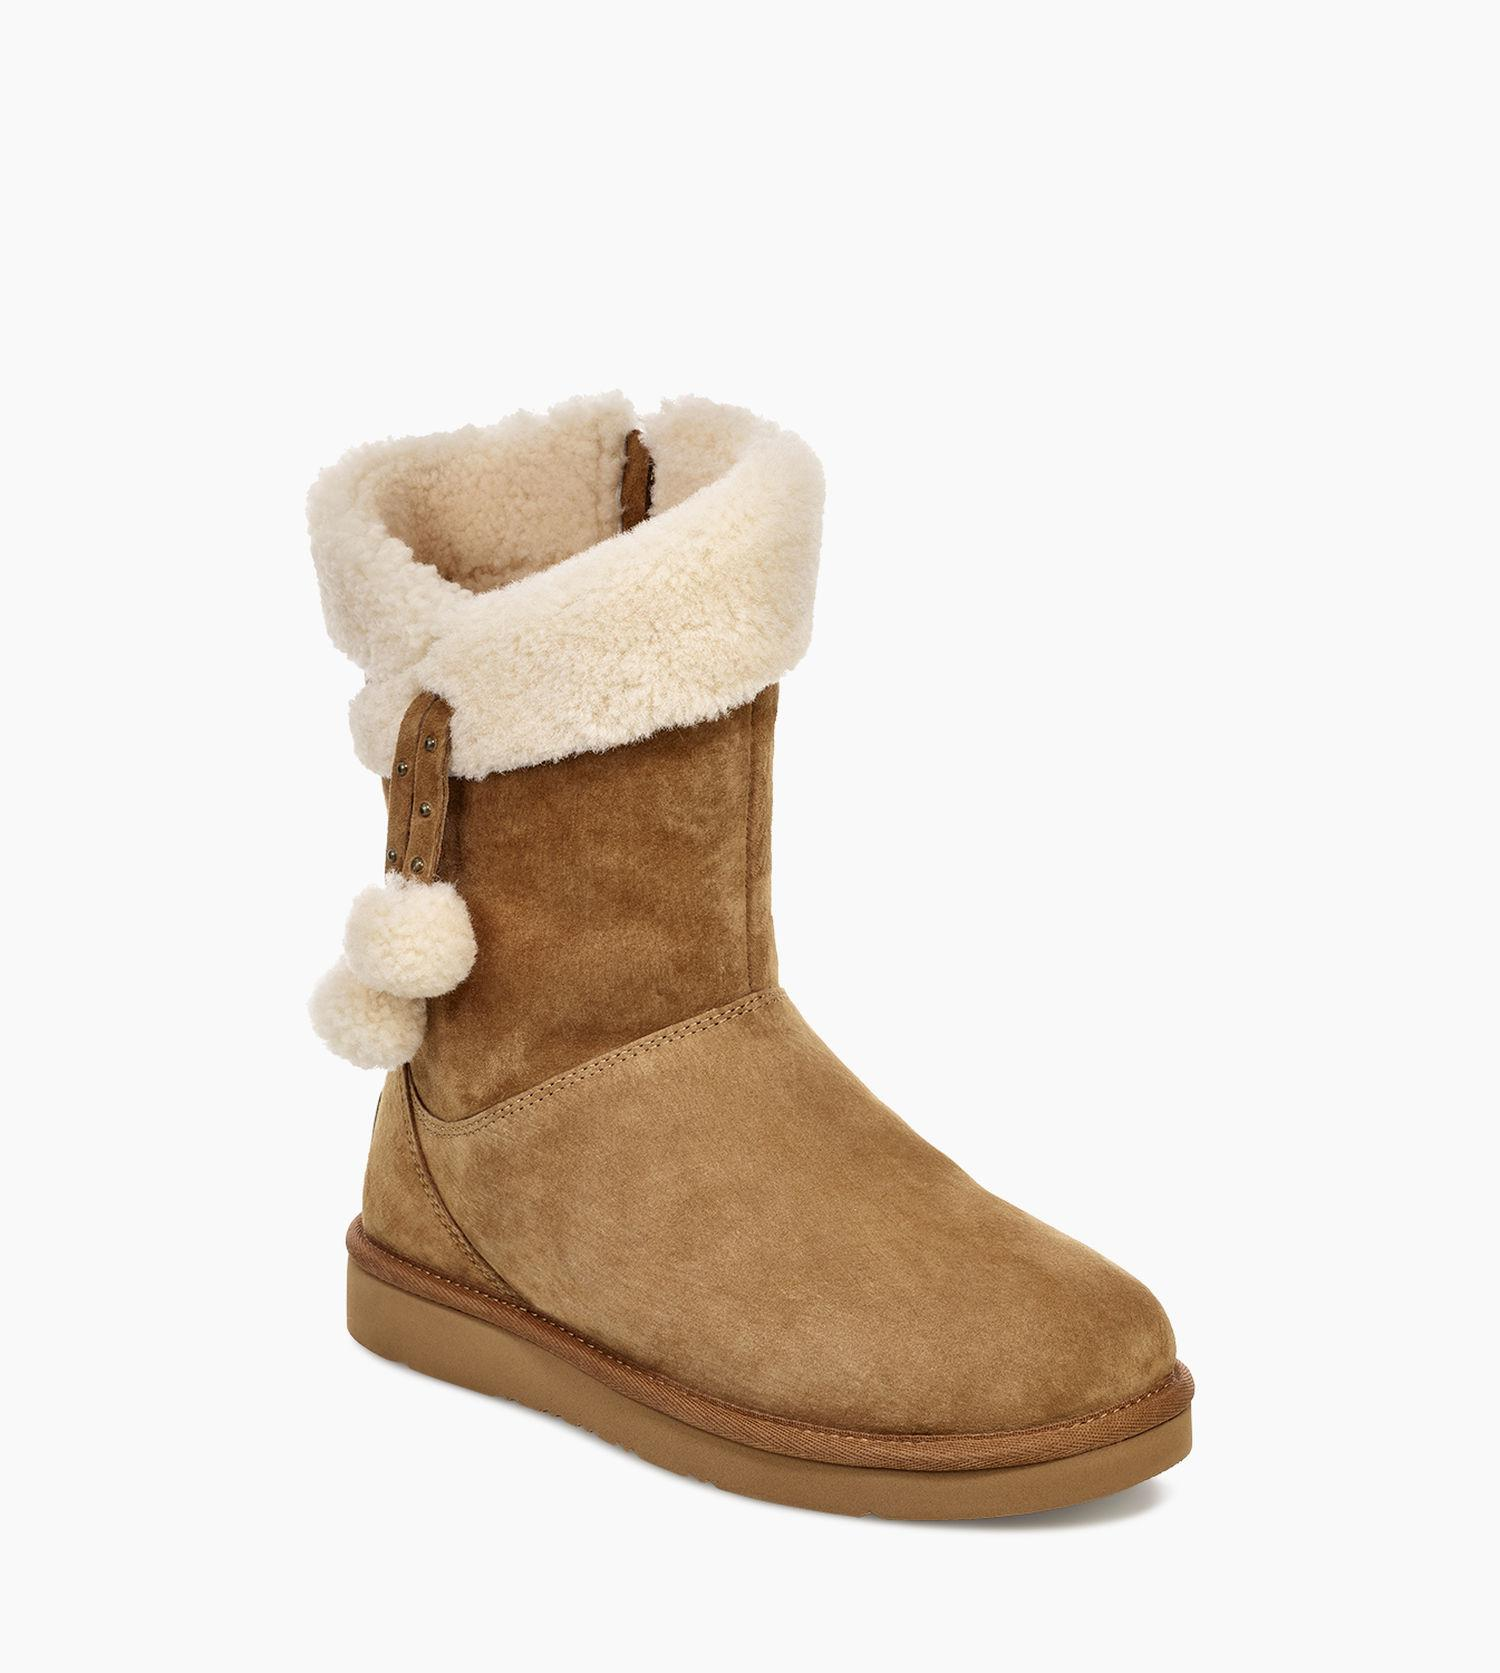 aad6115392e Ugg Brown Women's Share This Product Plumdale Cuff Short